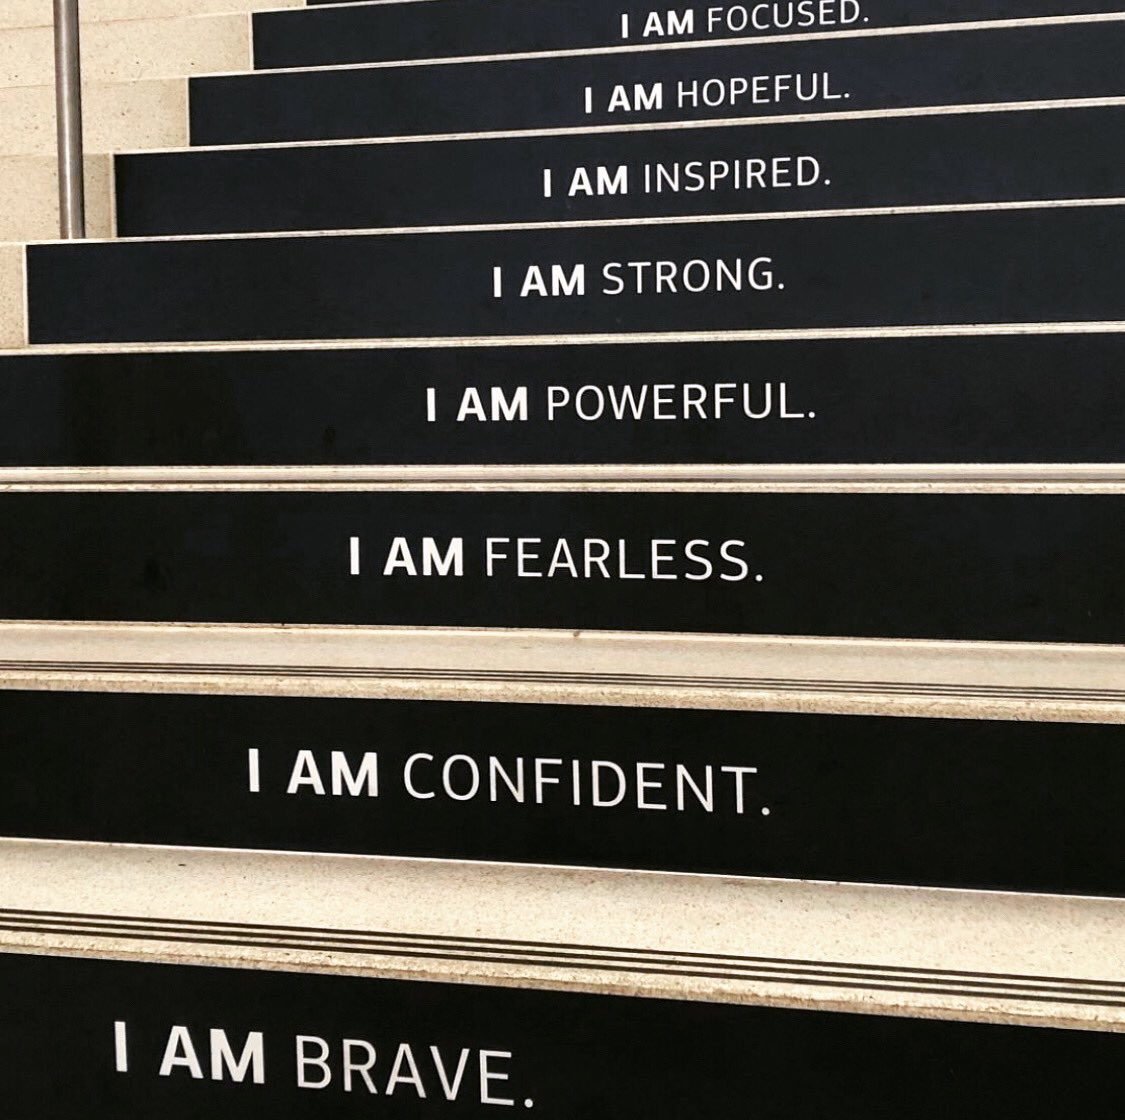 I am affirmations are a great way to stay positive so recite them throughout the  day, make them your own. #delawnaspeakslife #womenovercoiming #refusetosettle #graditude #happiness #love #determination #dedication #growth #positivevibes #positivity #mindfulness #mindset #affirmpic.twitter.com/PGnNdEWe5q